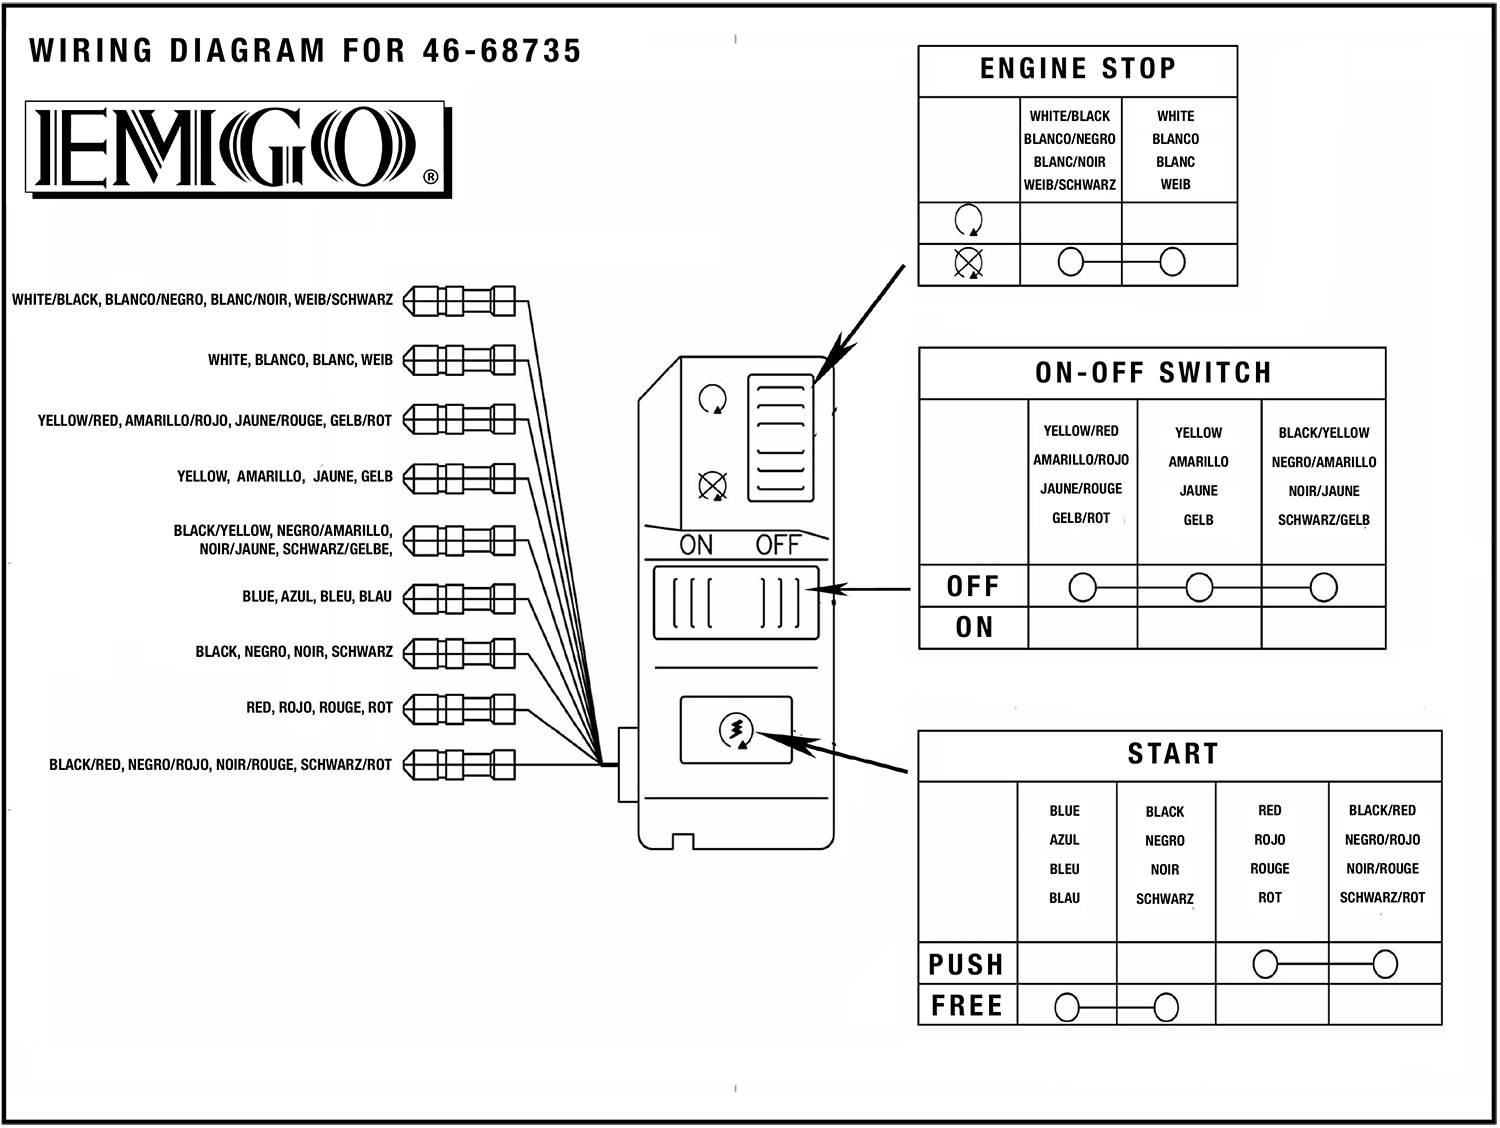 cb1000c wiring diagram wiring diagram blogs honda 1983 custom 1000 cb500t wiring diagram wiring diagram blogs [ 1500 x 1128 Pixel ]